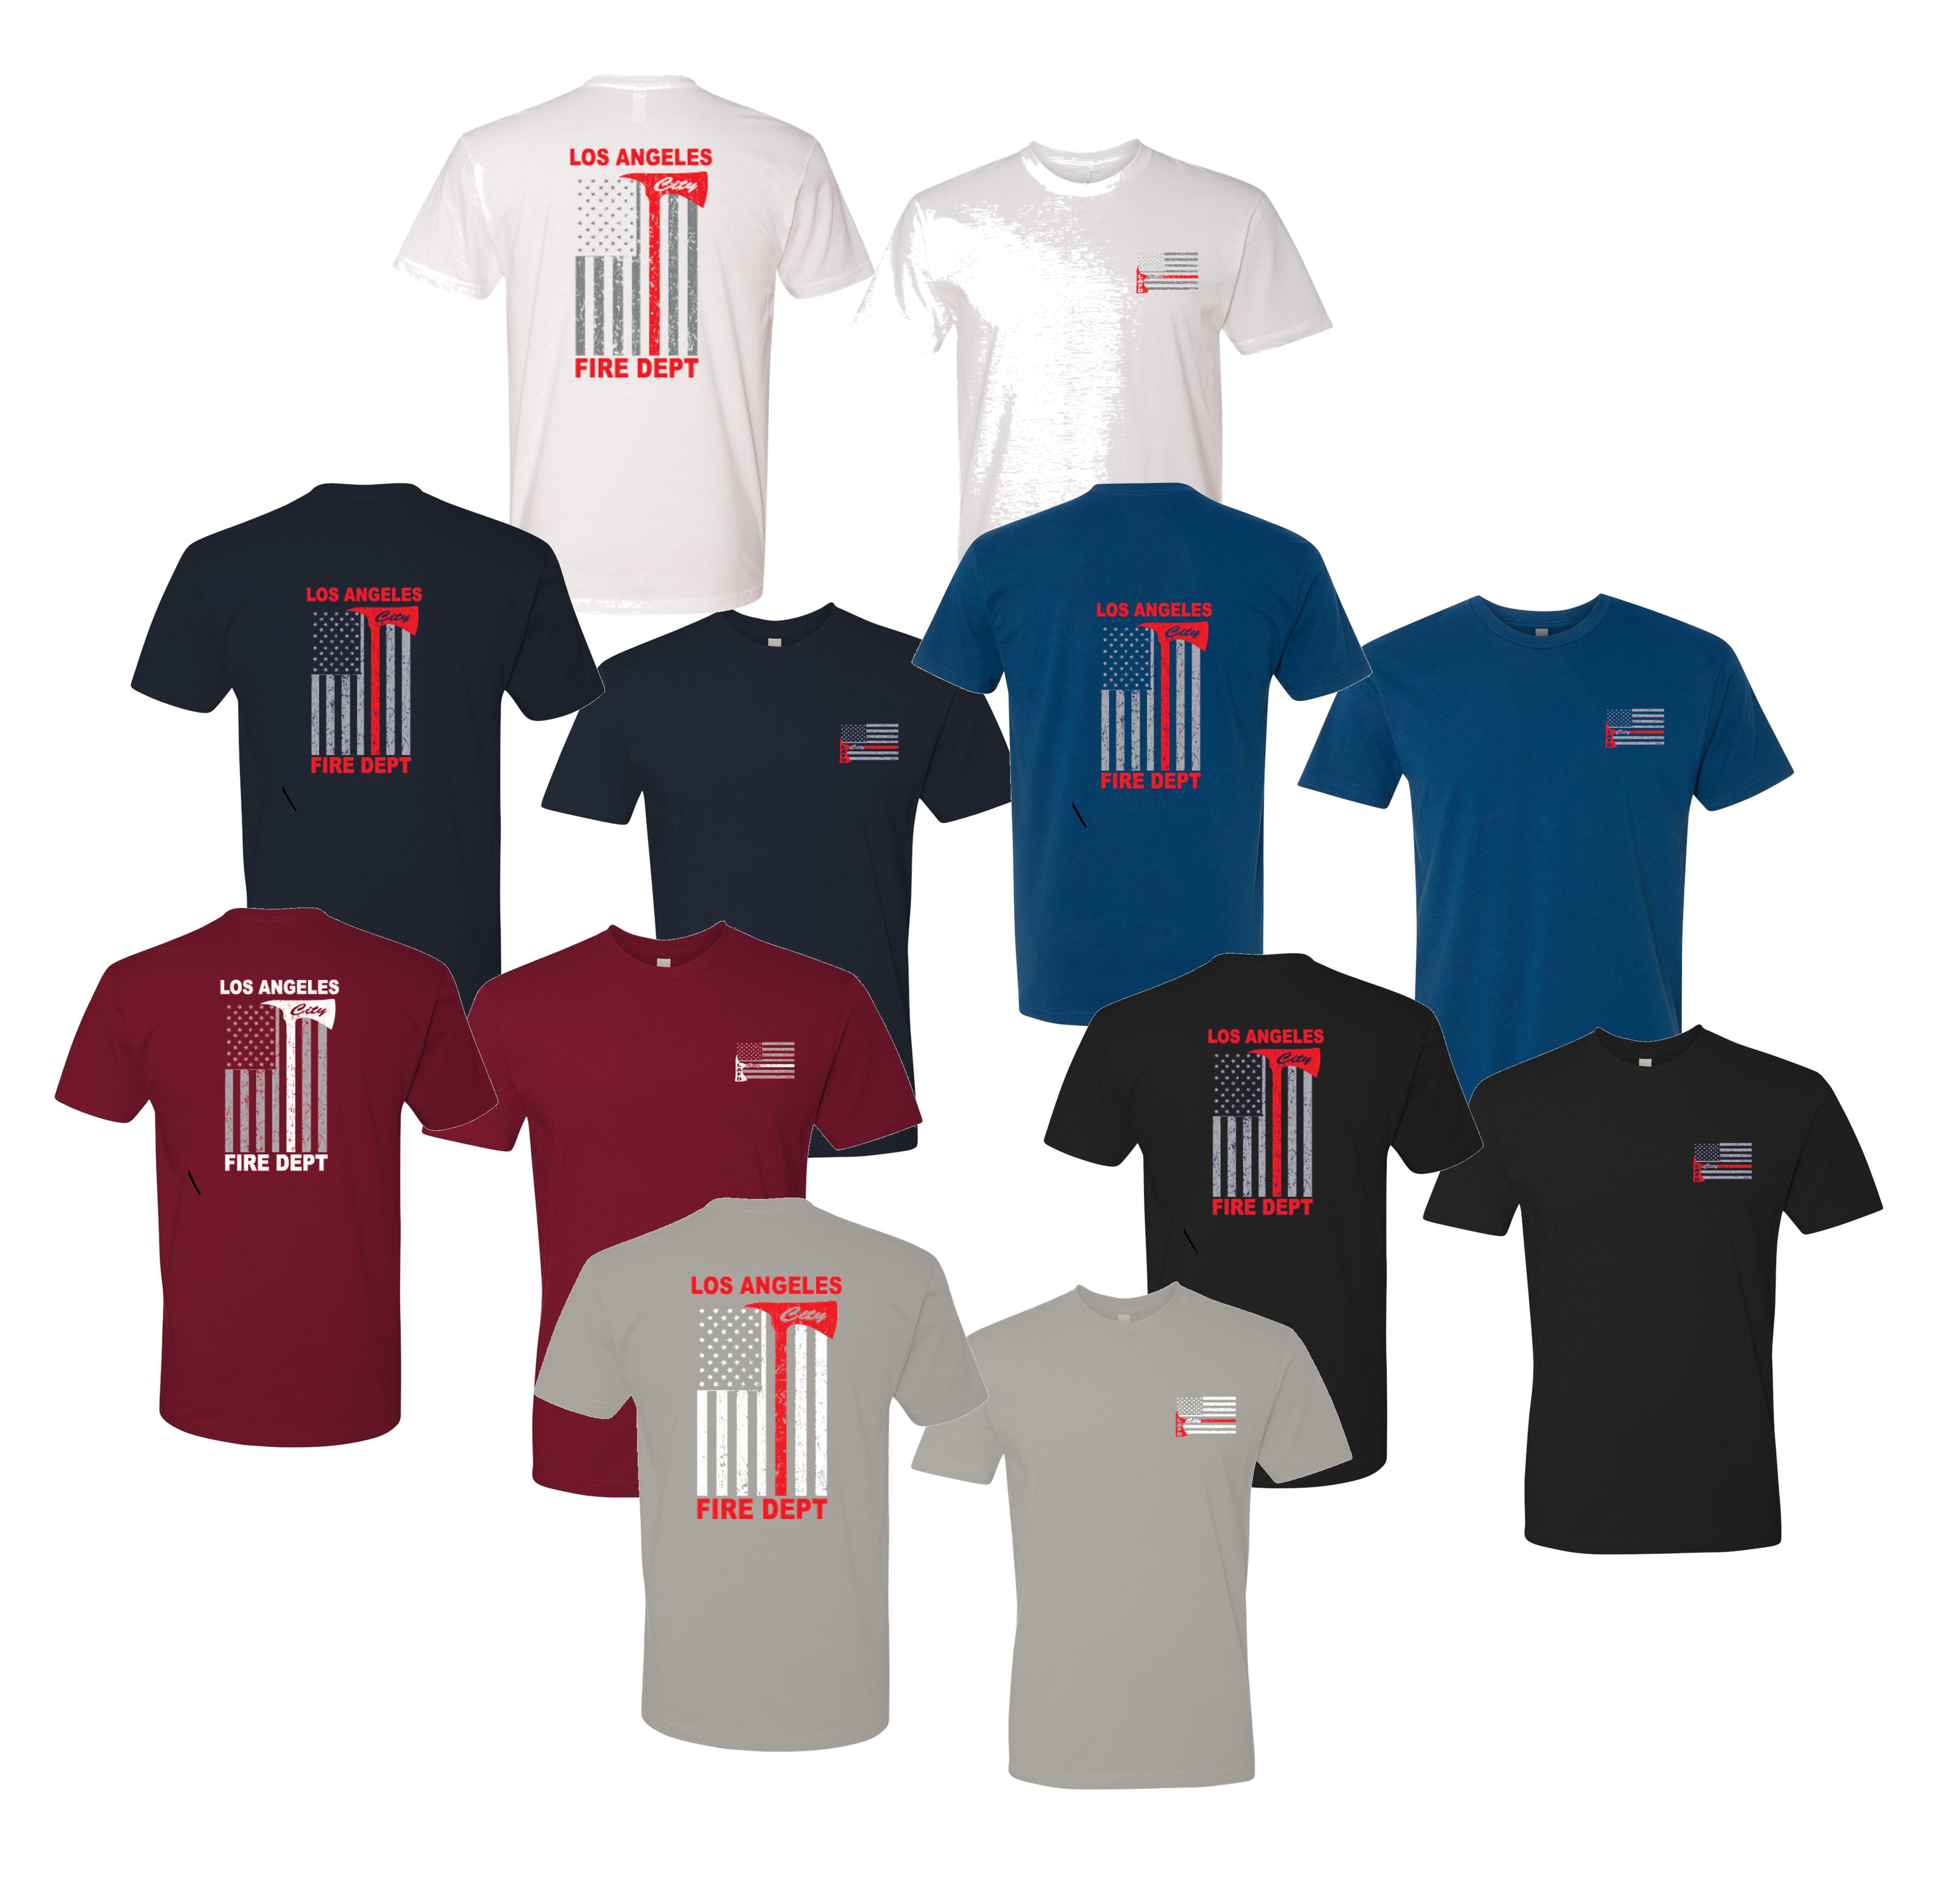 ee80a71a Los Angeles City Fire Thin Red Line T-shirt Distressed American Flag Design